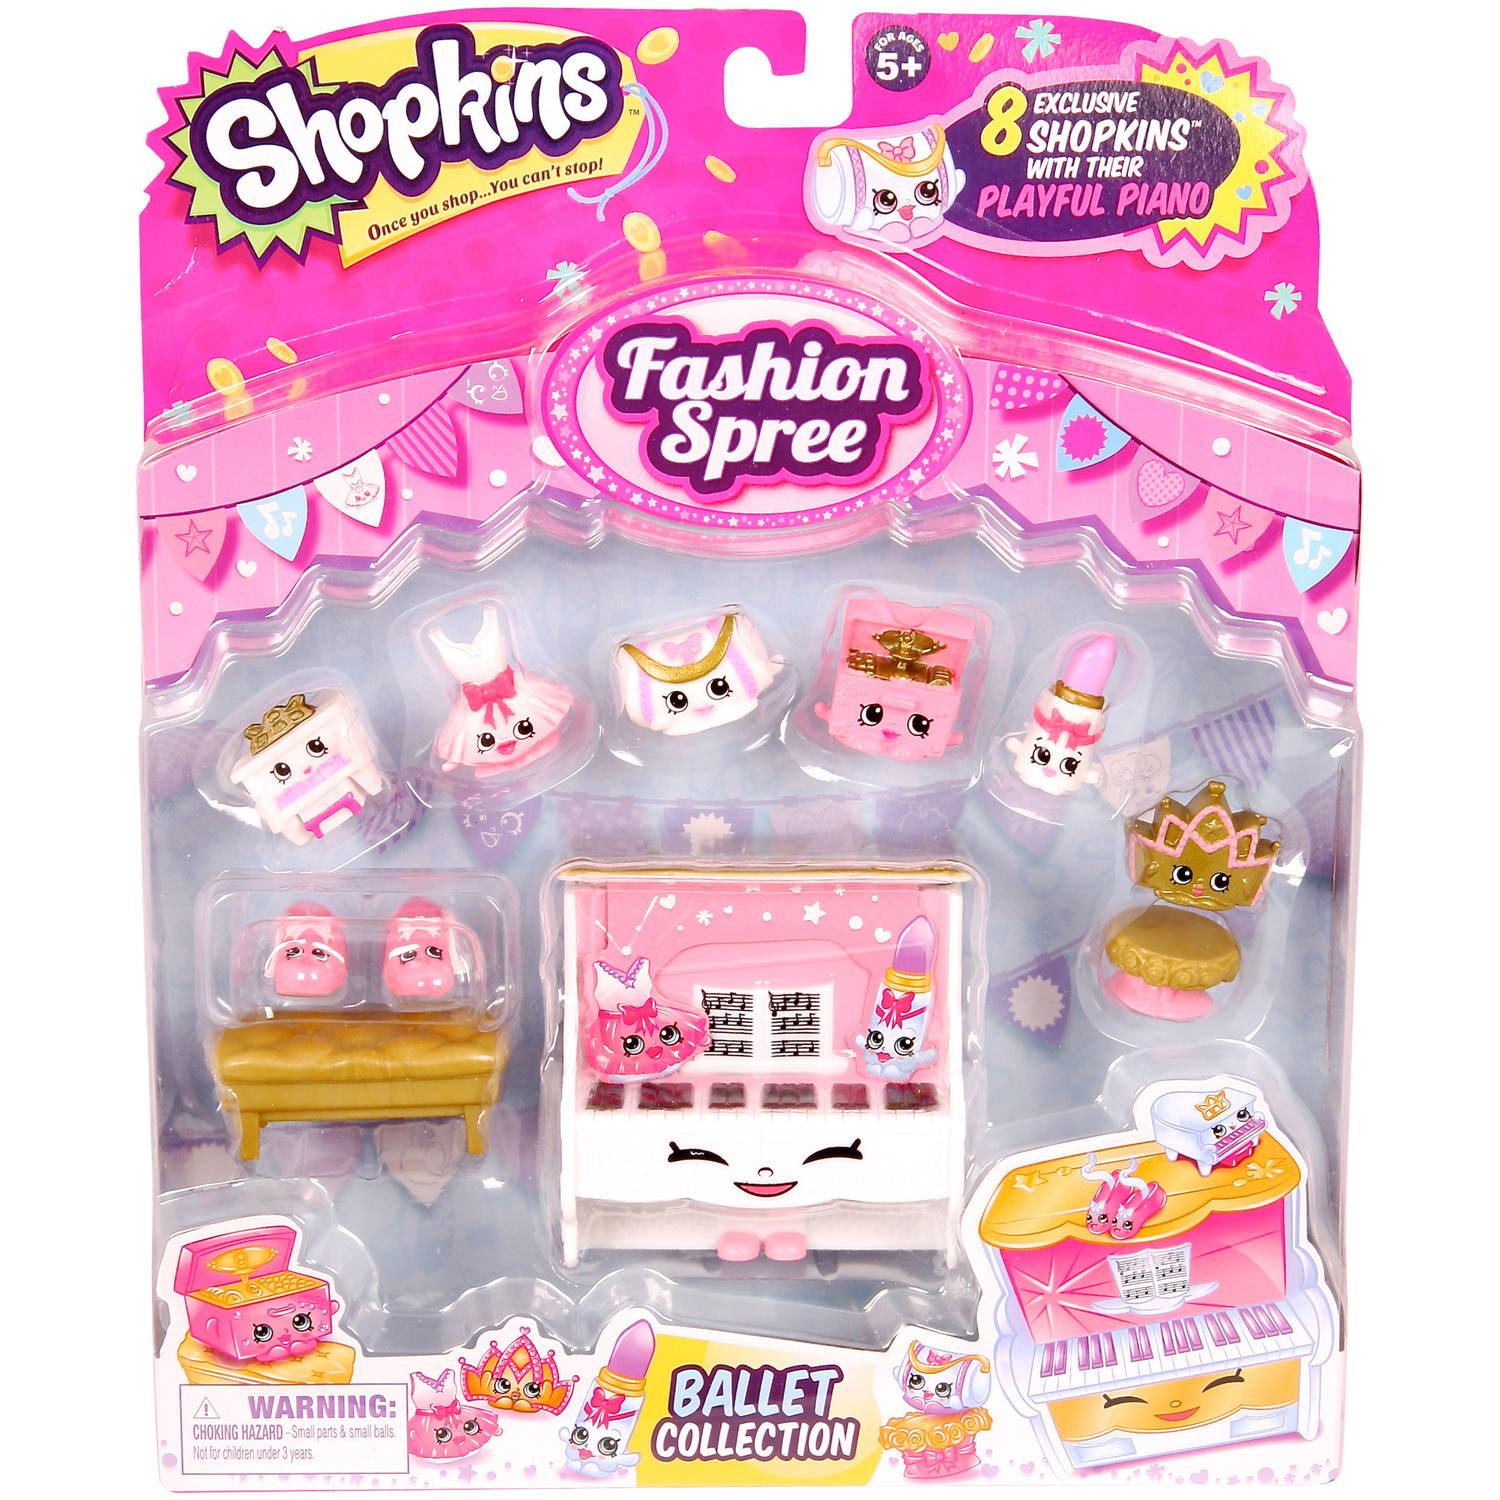 Moose Toys Shopkins Season 3 Fashion Spree Themed Pack Ballet Collection